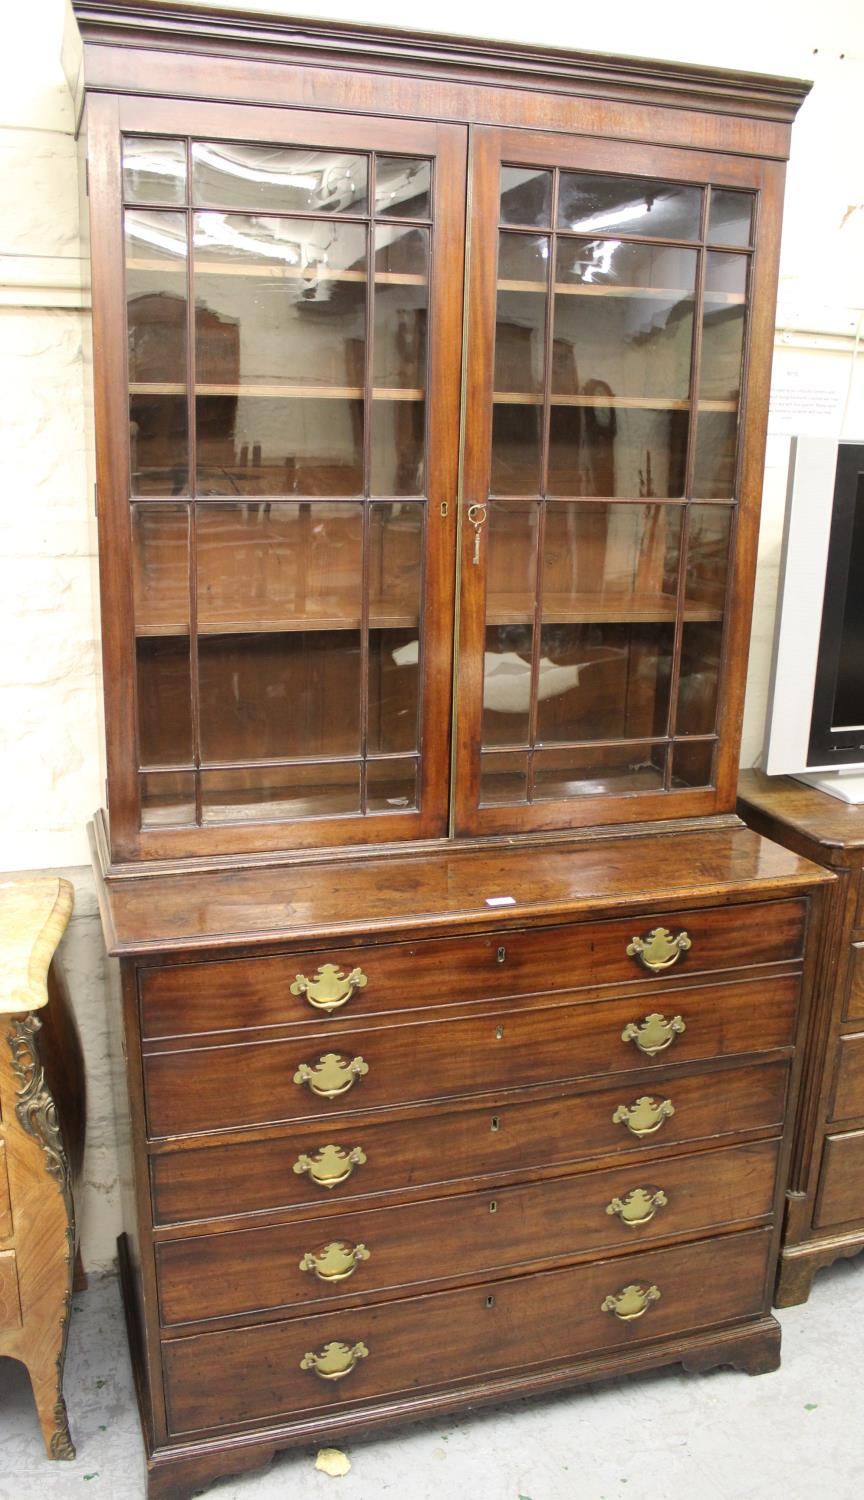 George III mahogany secretaire bookcase, the moulded cornice above a pair of bar glazed doors